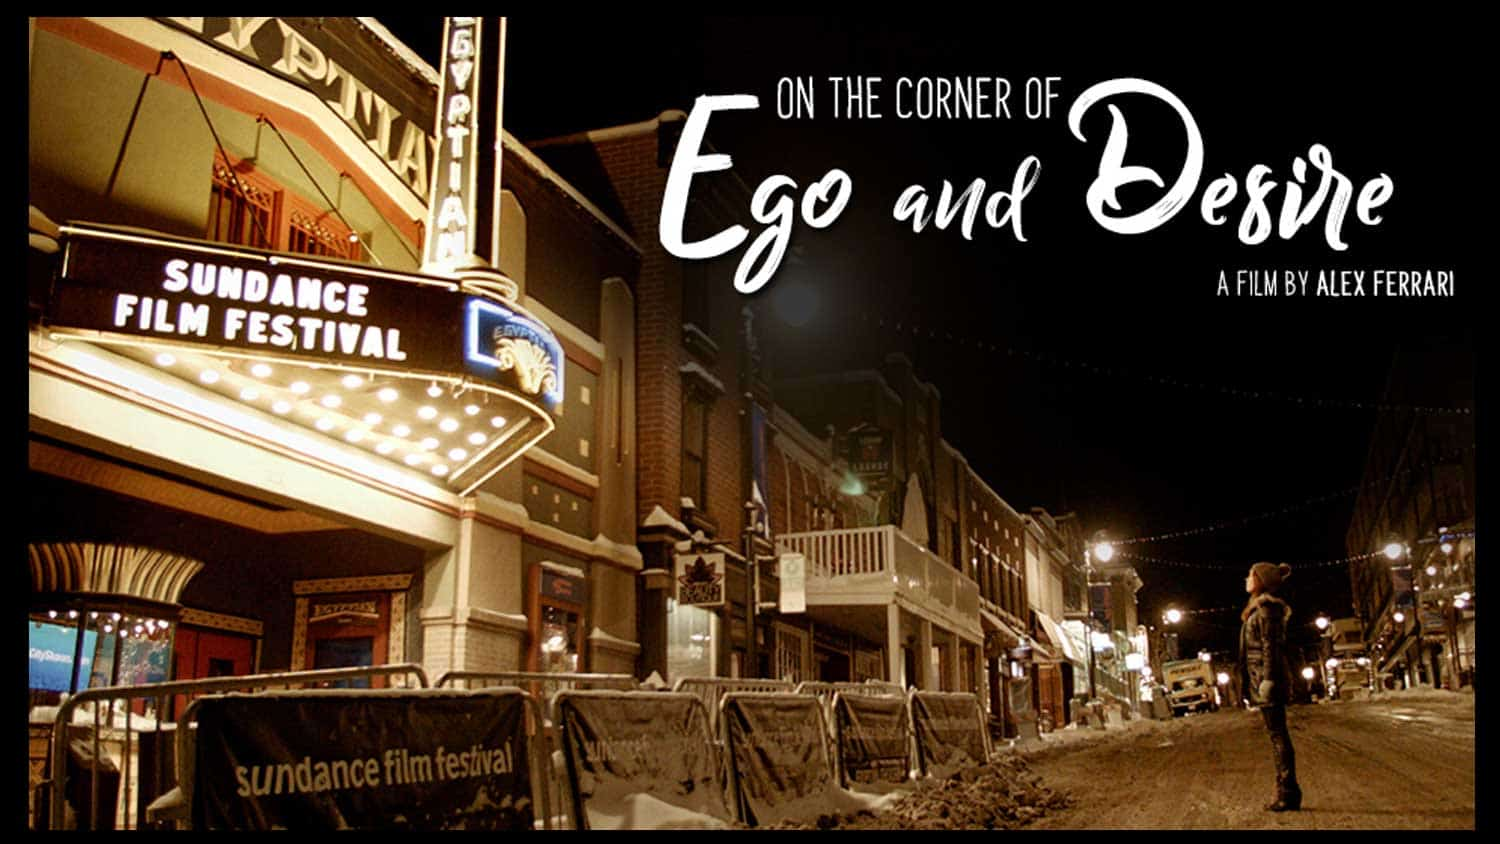 On the Corner of Ego and Desire (2019) Subtitle (English Srt) Download